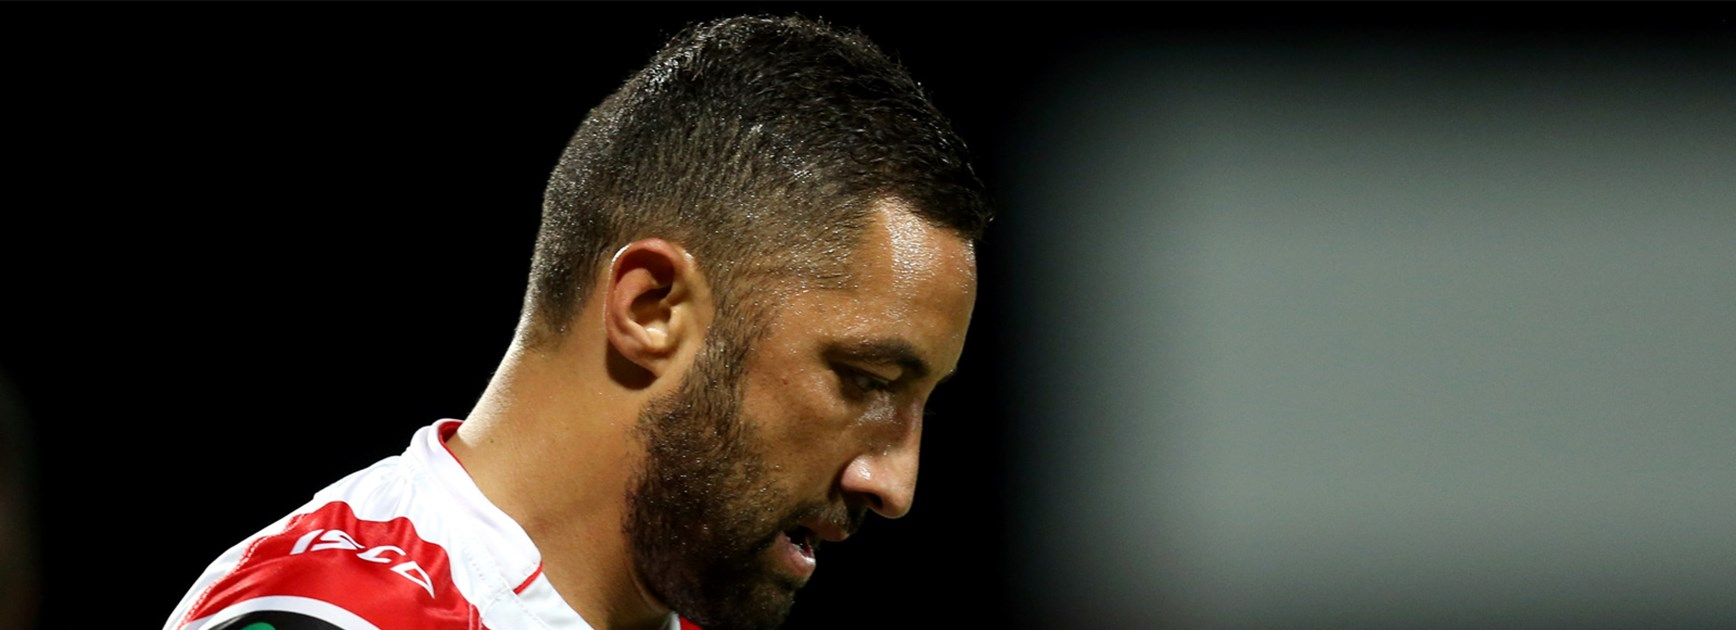 Benji Marshall is set to miss Friday night's clash with the Broncos.